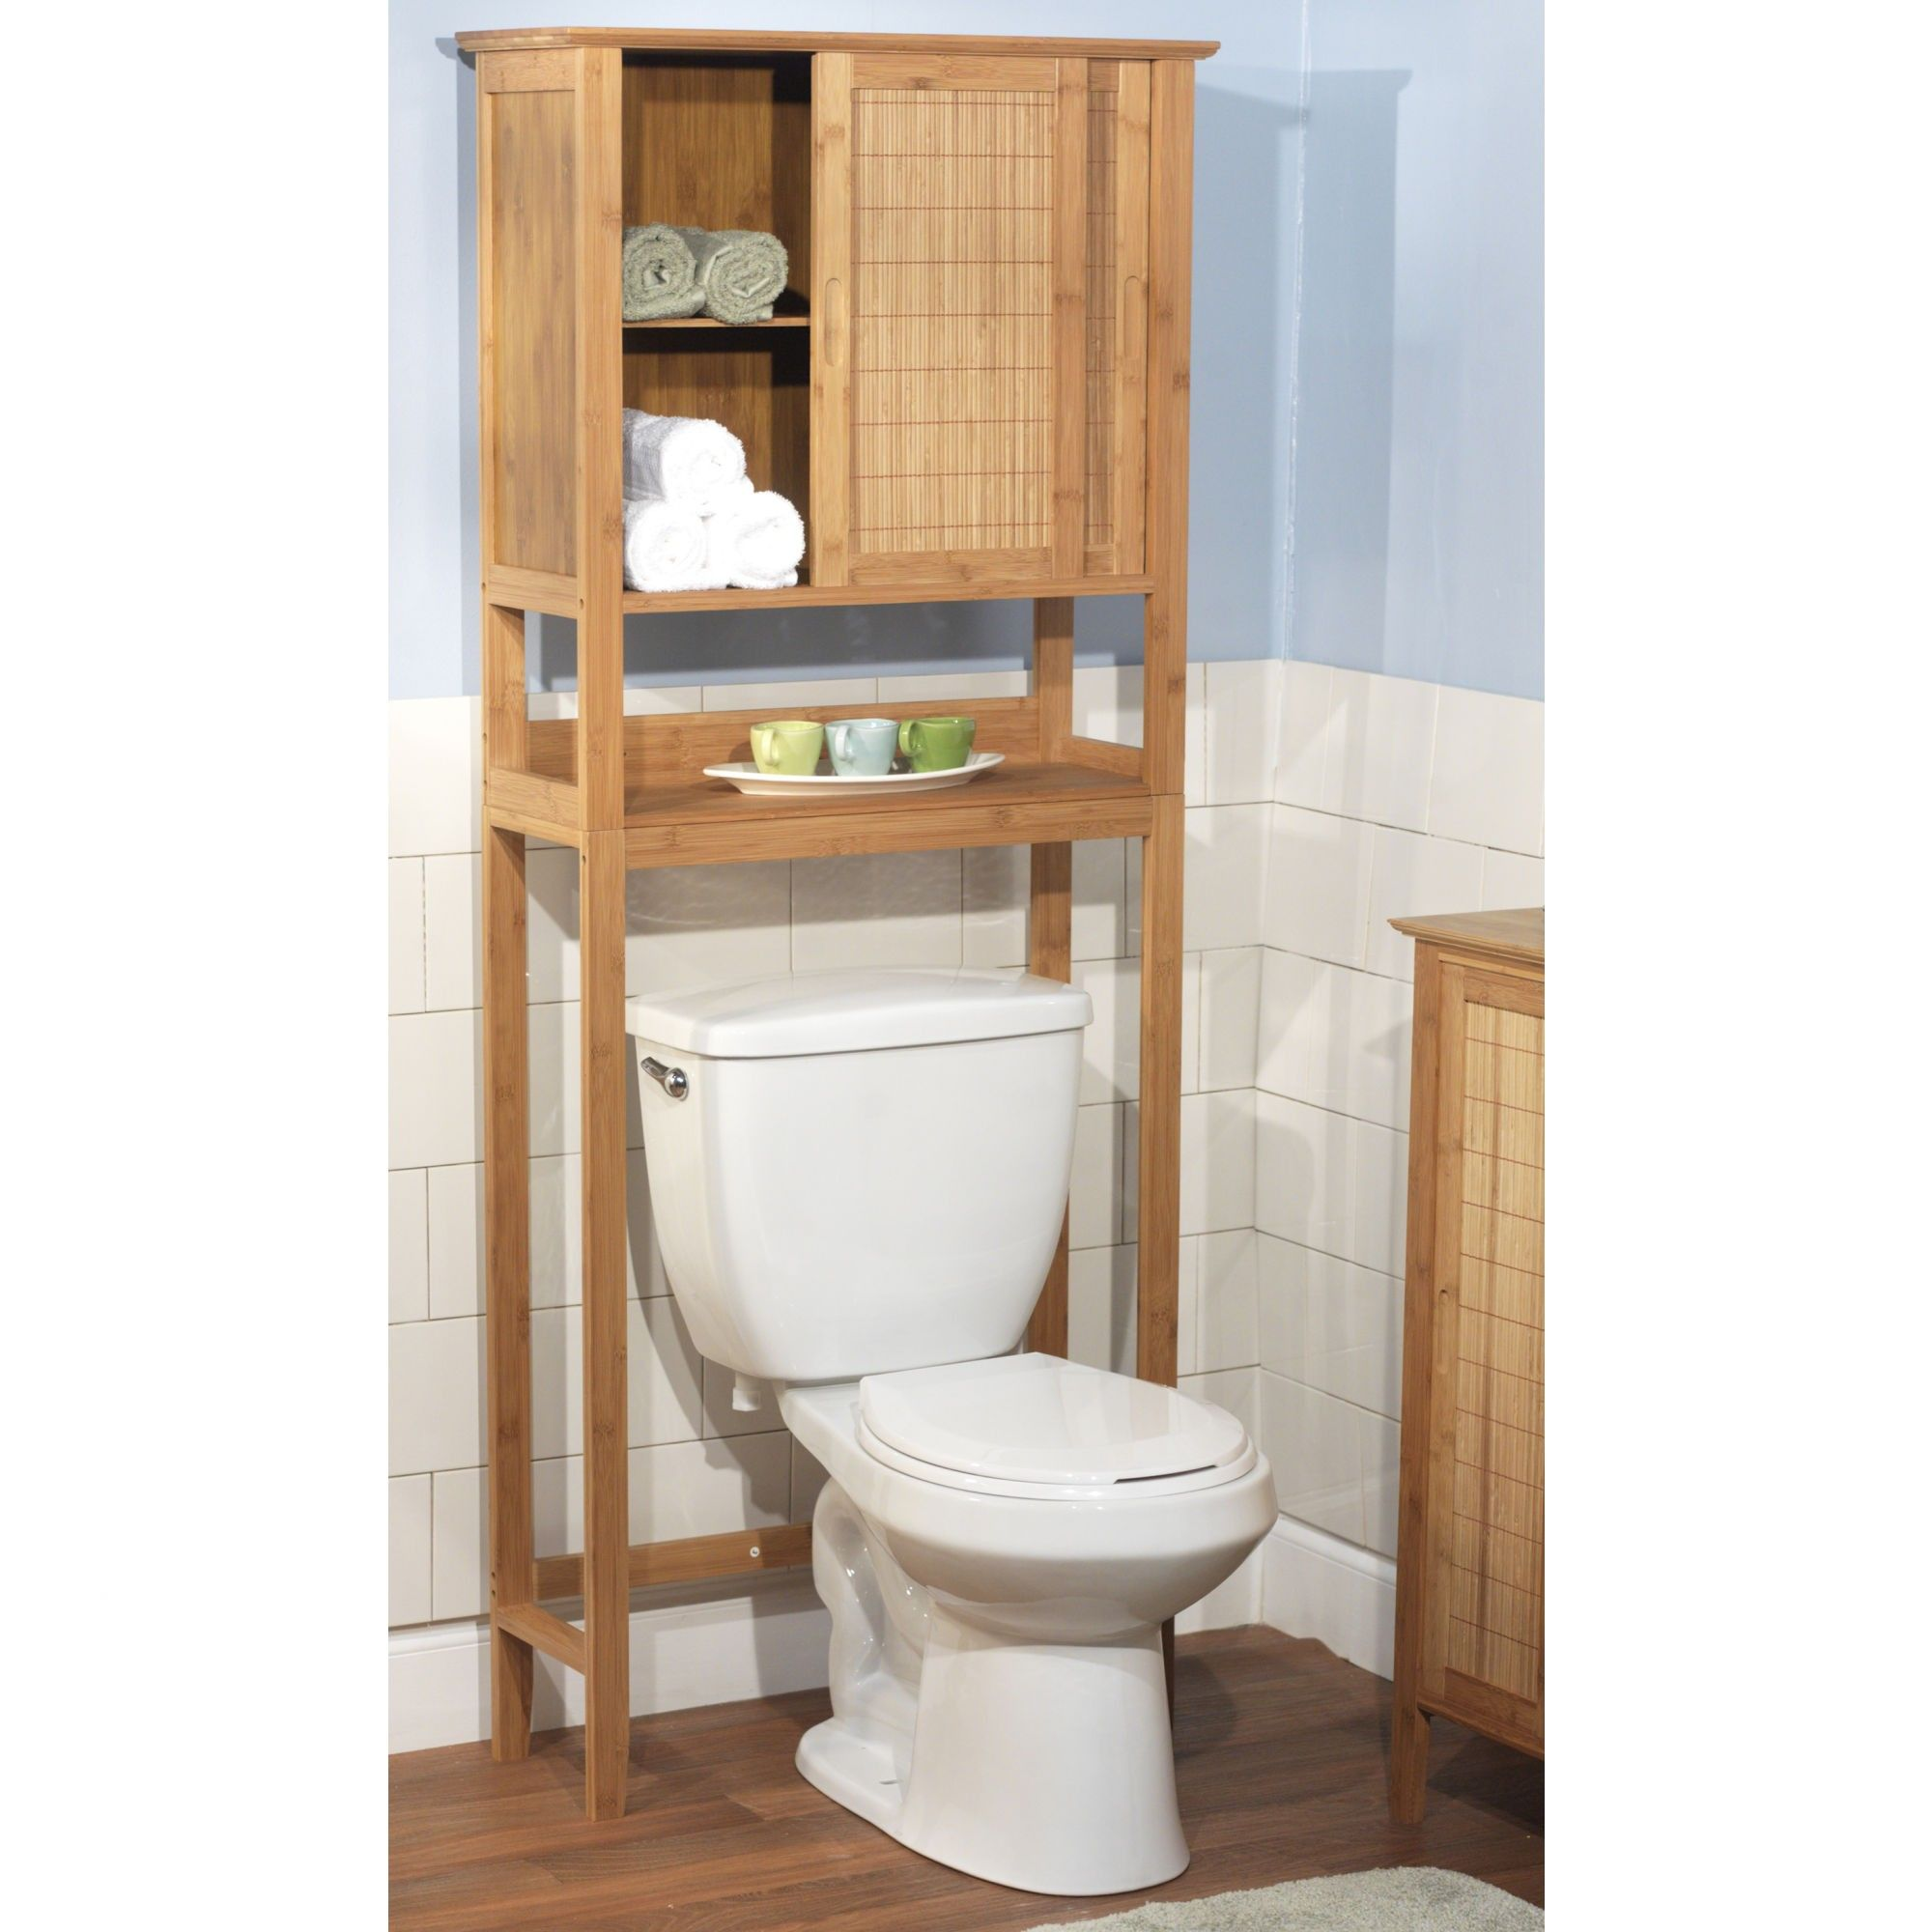 Superb Rustic Bathroom Space Saver Over Toilet Wood With Subway Tile Wall Style  And Laminate Flooring Ideas